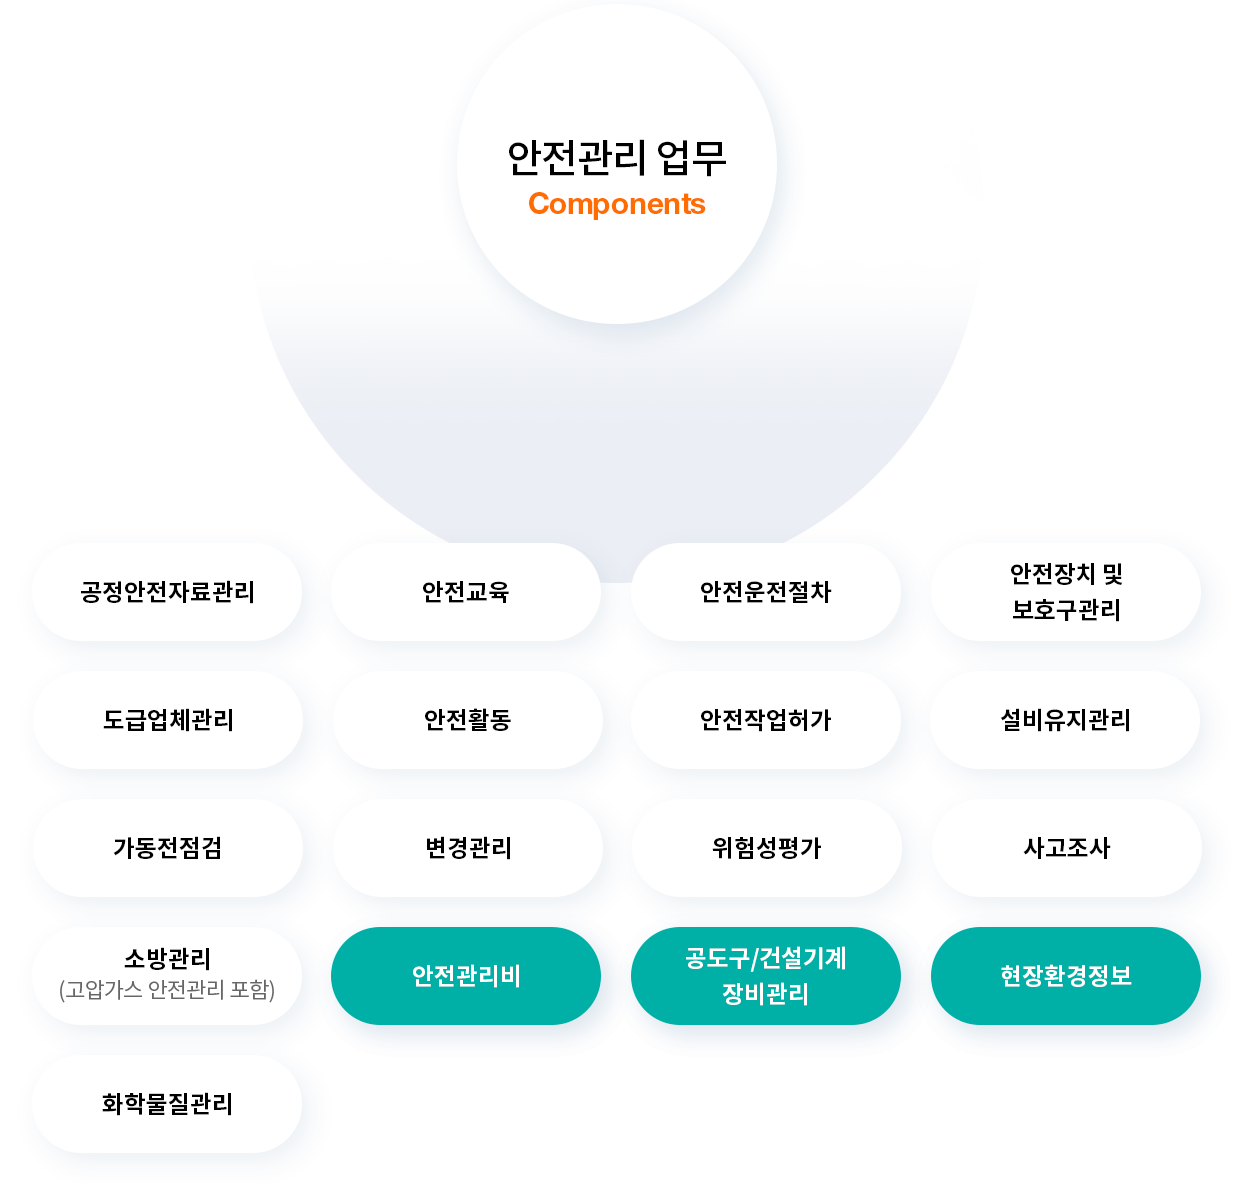 포스코ICT의 Smart Safety는 건설기본법에 맞는 서비스를 제공합니다 / Smart Safety, the integrated safety management solution of PoscoICT provides services that comply with Framework Act on the Construction Industry